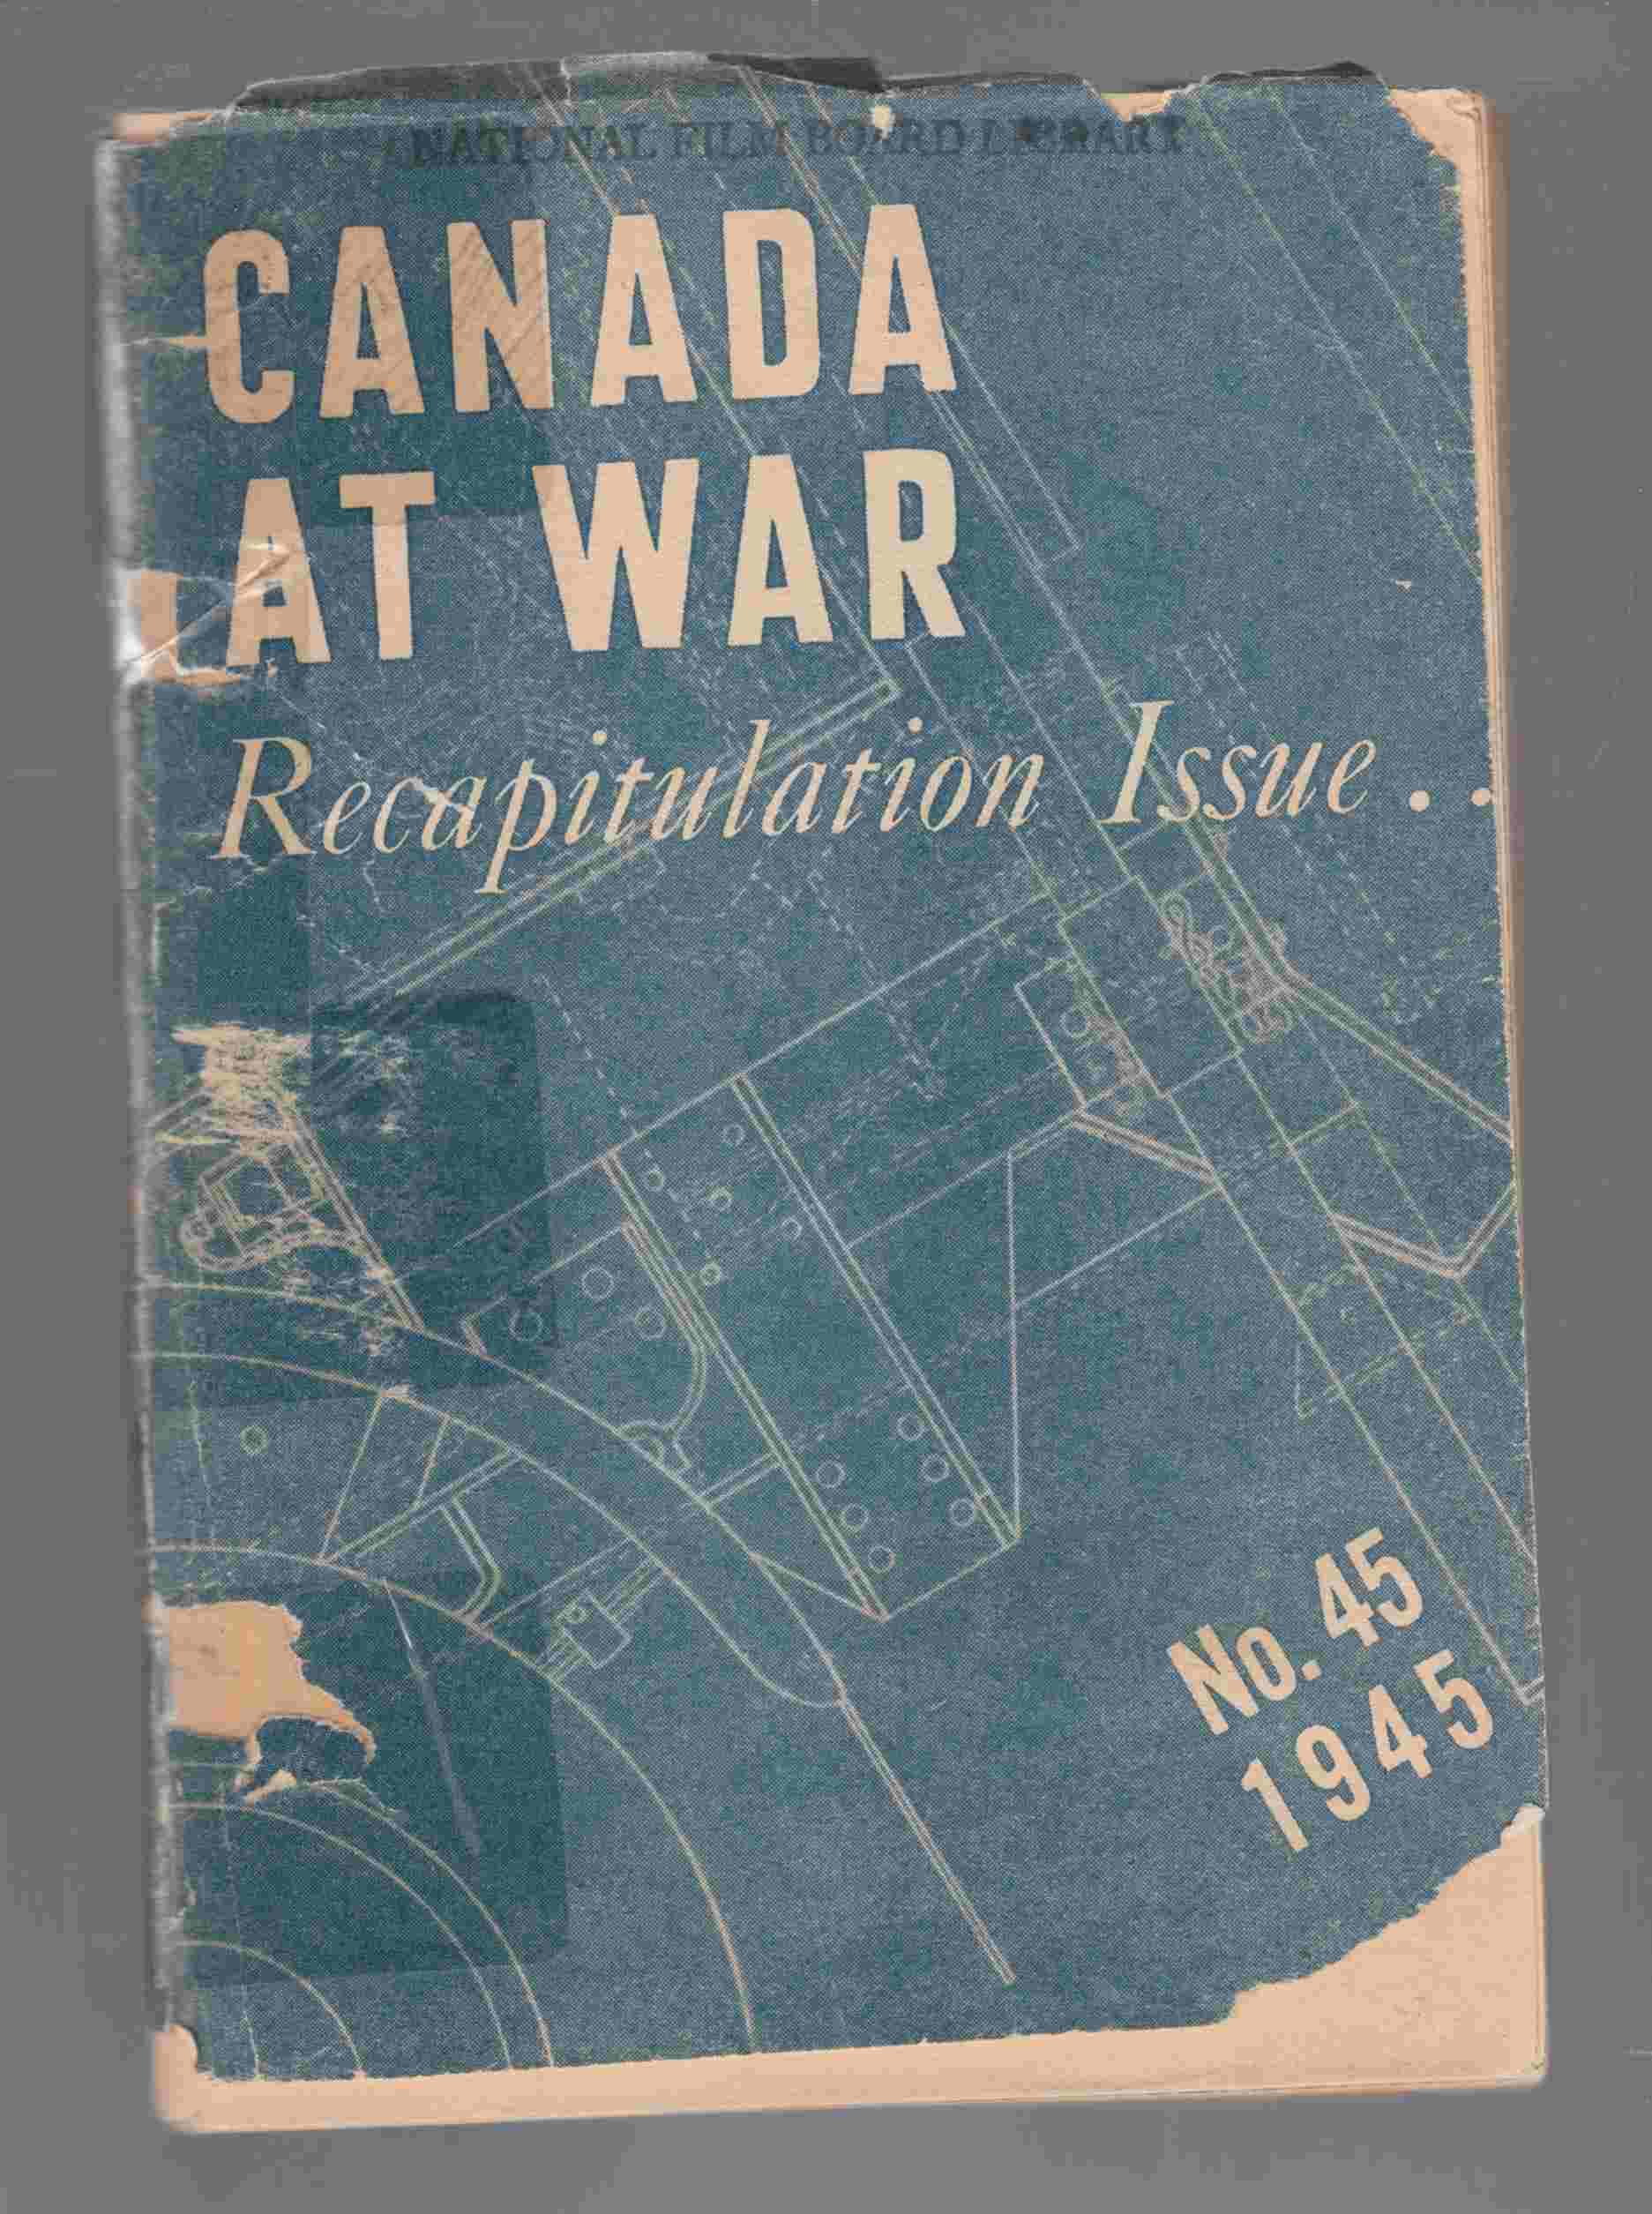 Image for Canada At War Recapitulation Issue No. 45 1945